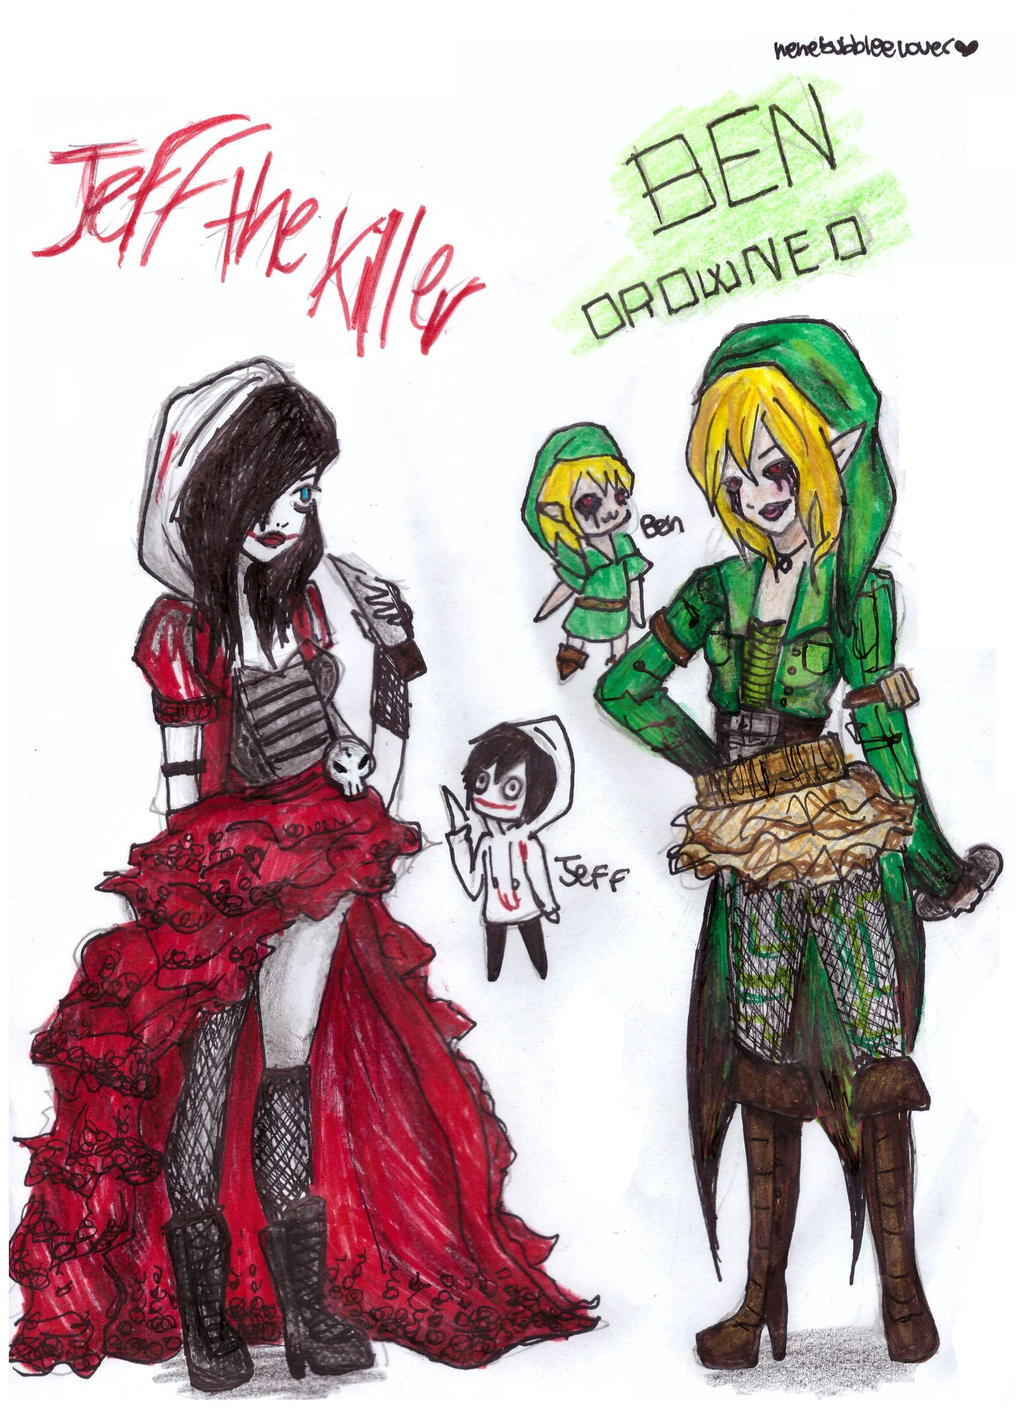 jeff and ben inspired outfits by nenebubbleelover on